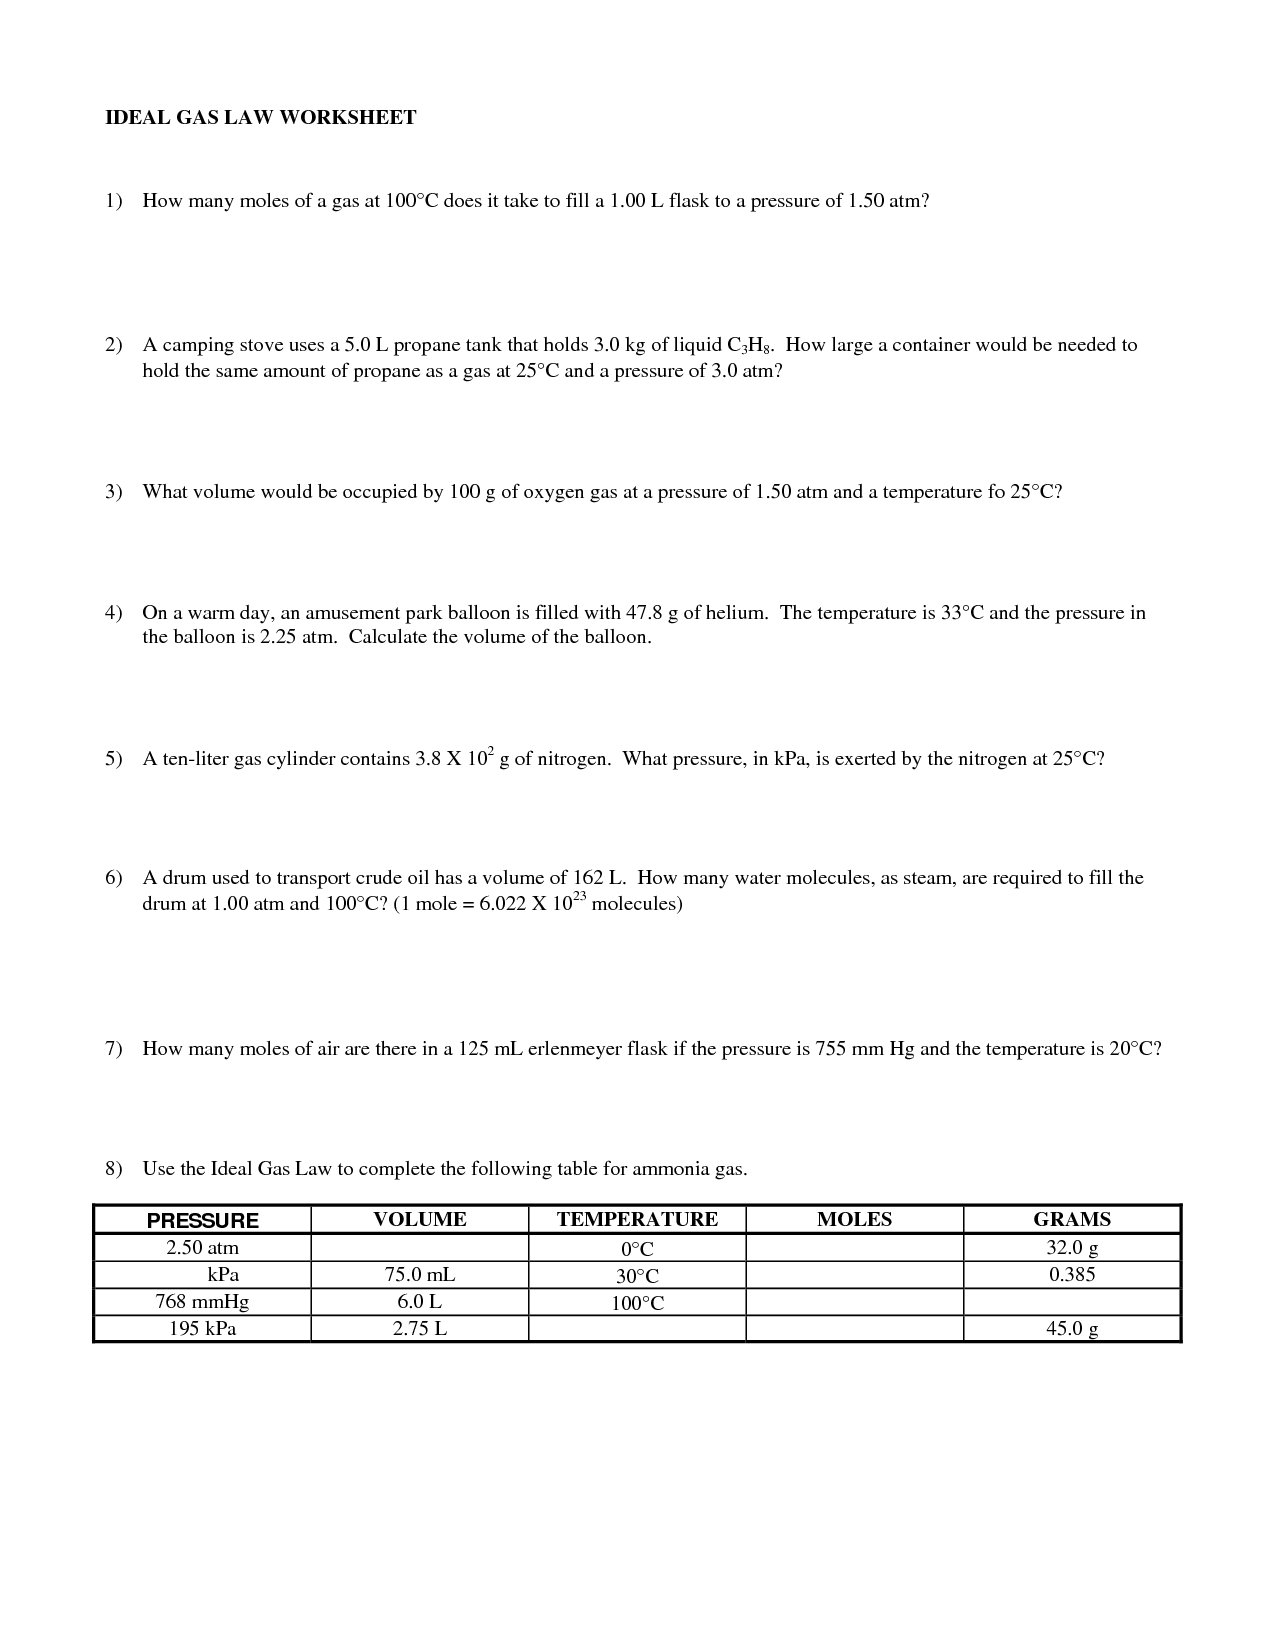 Gas Laws Worksheet With Answers